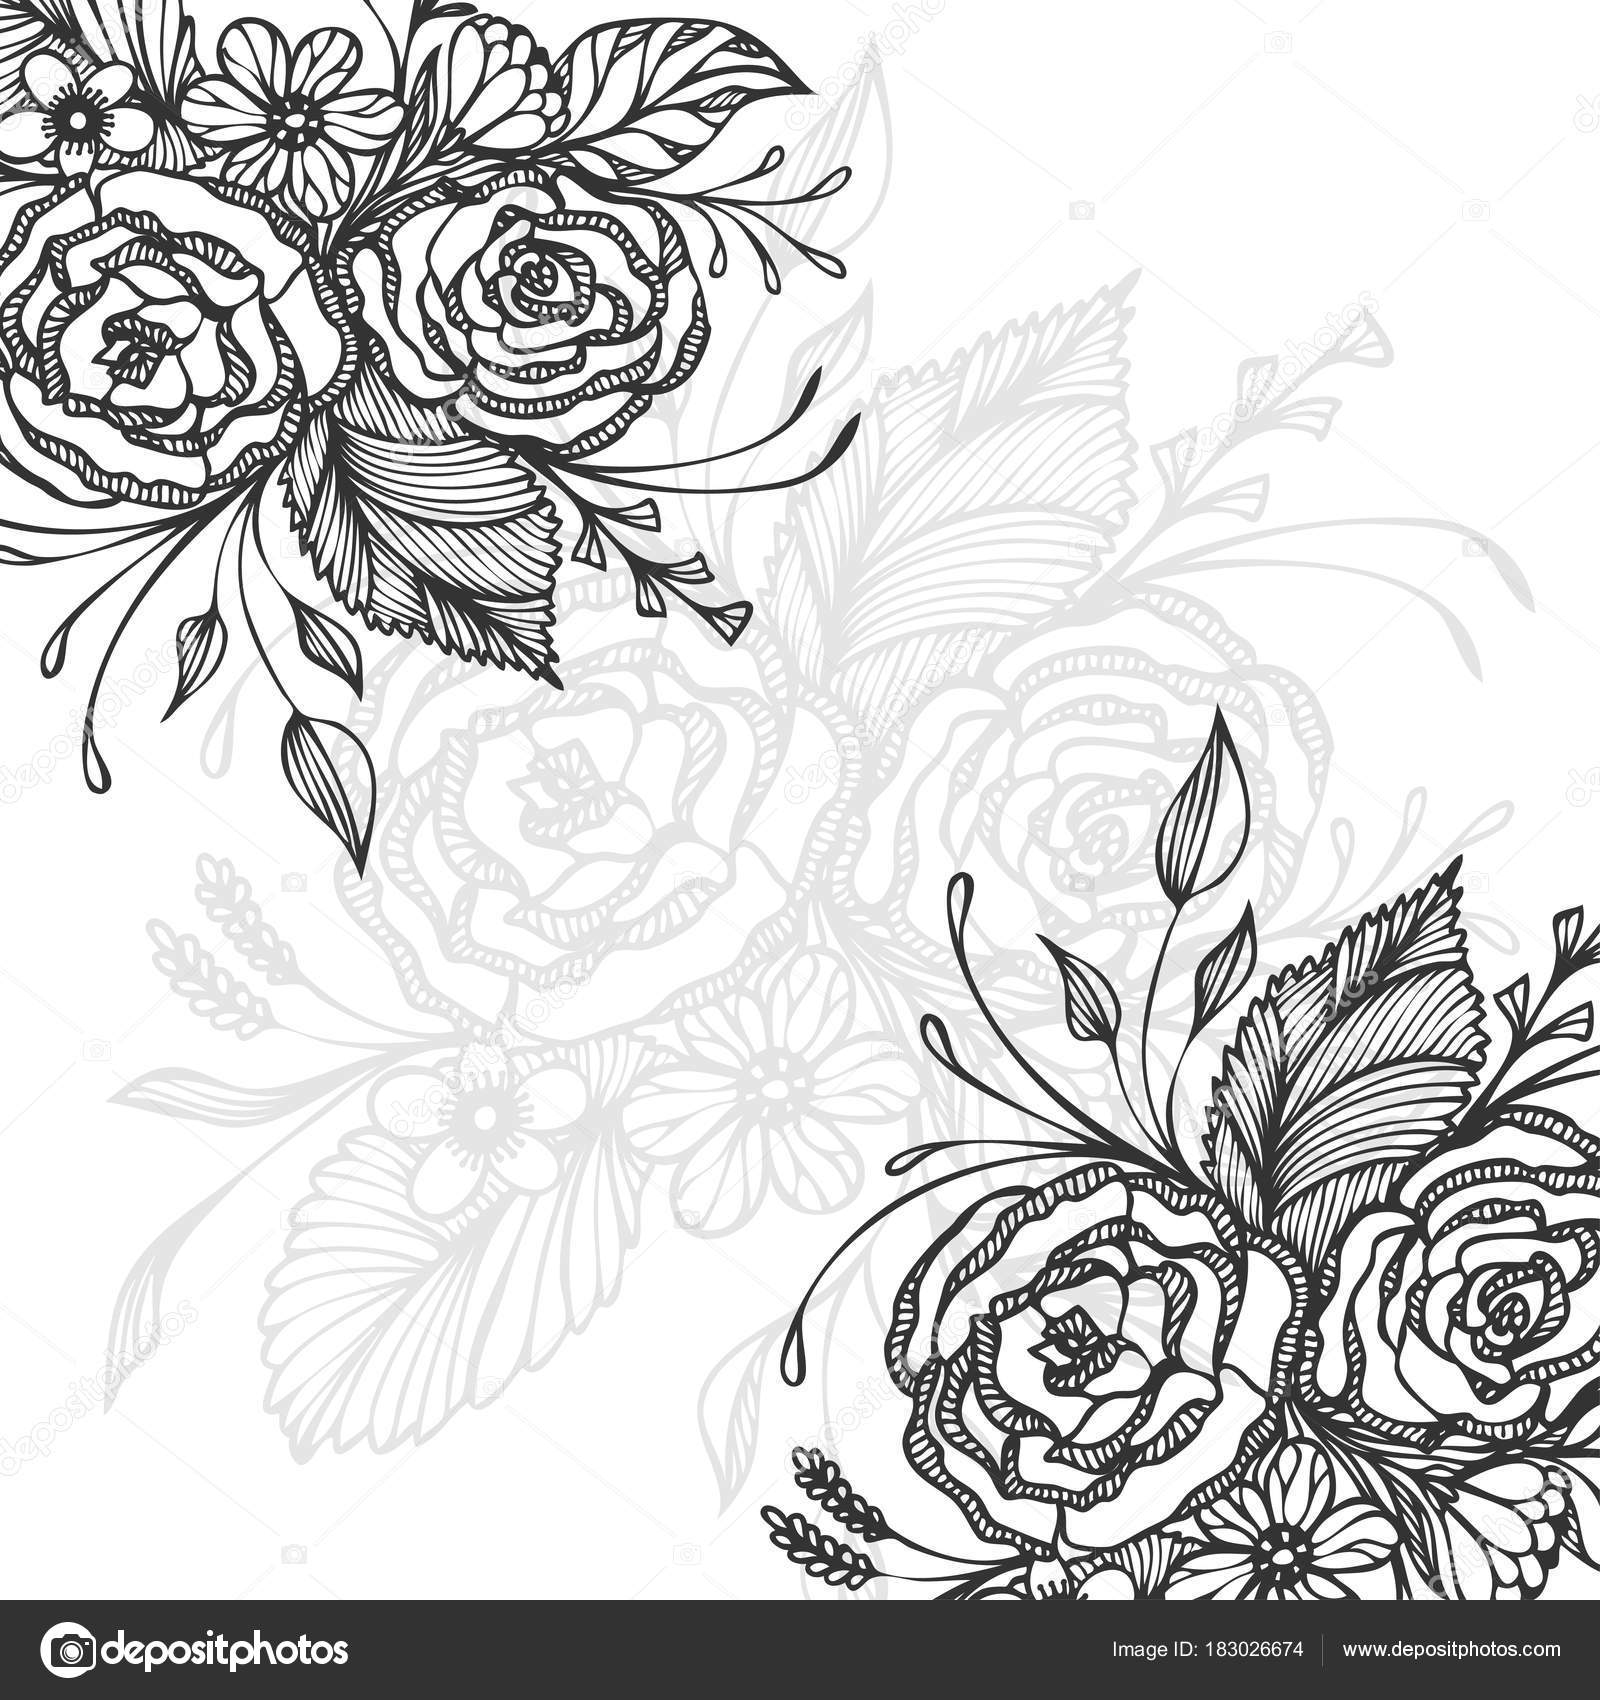 depositphotos stock illustration hand drawn background flowers bouquet